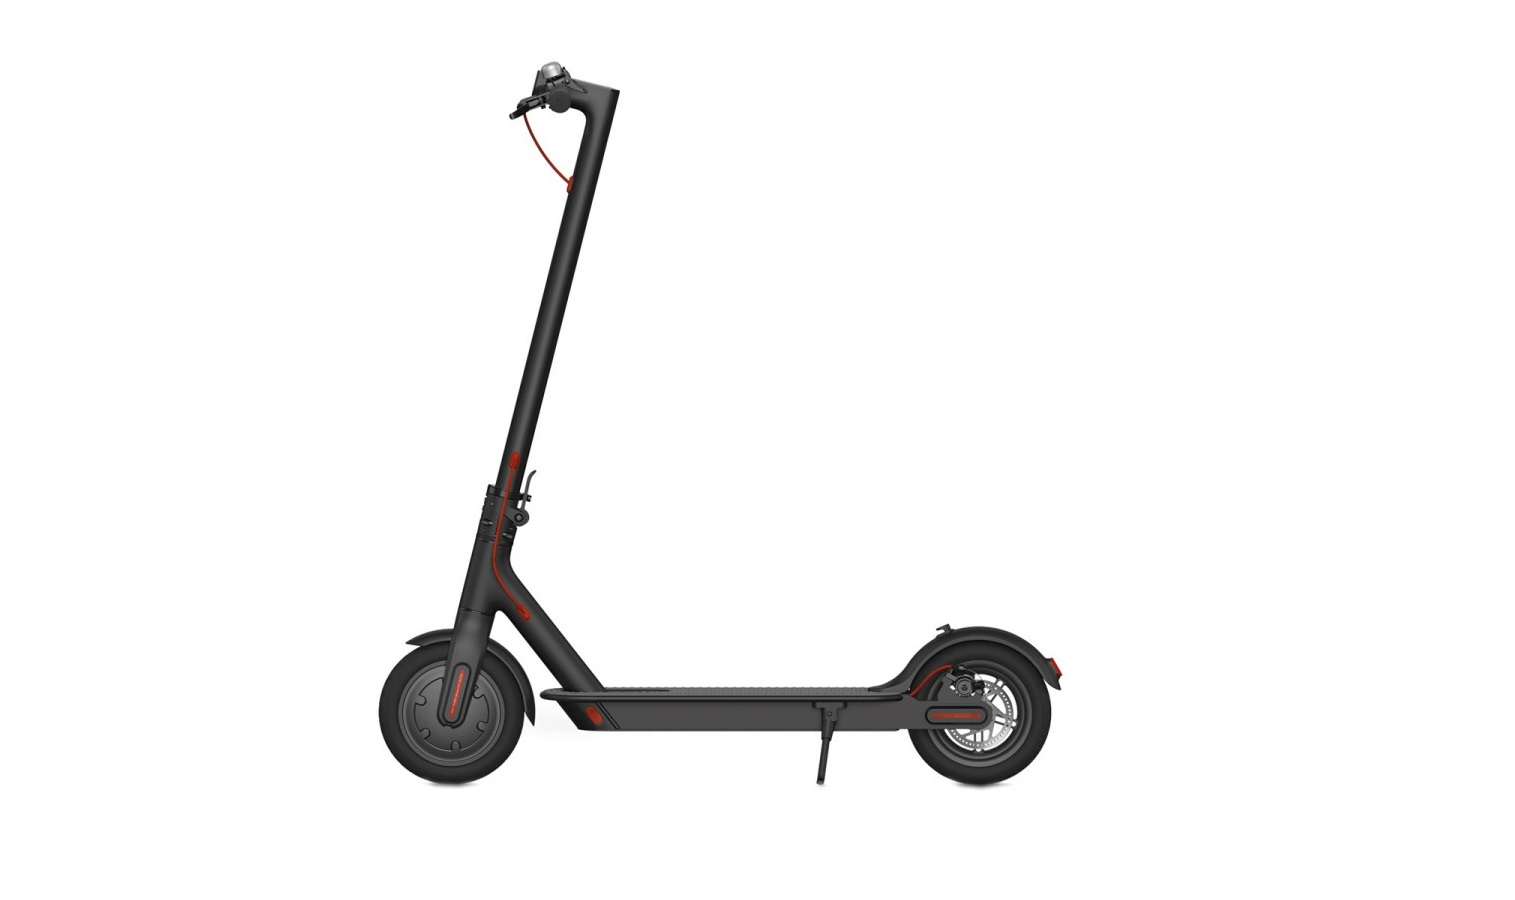 Pioneer Urban Mobility